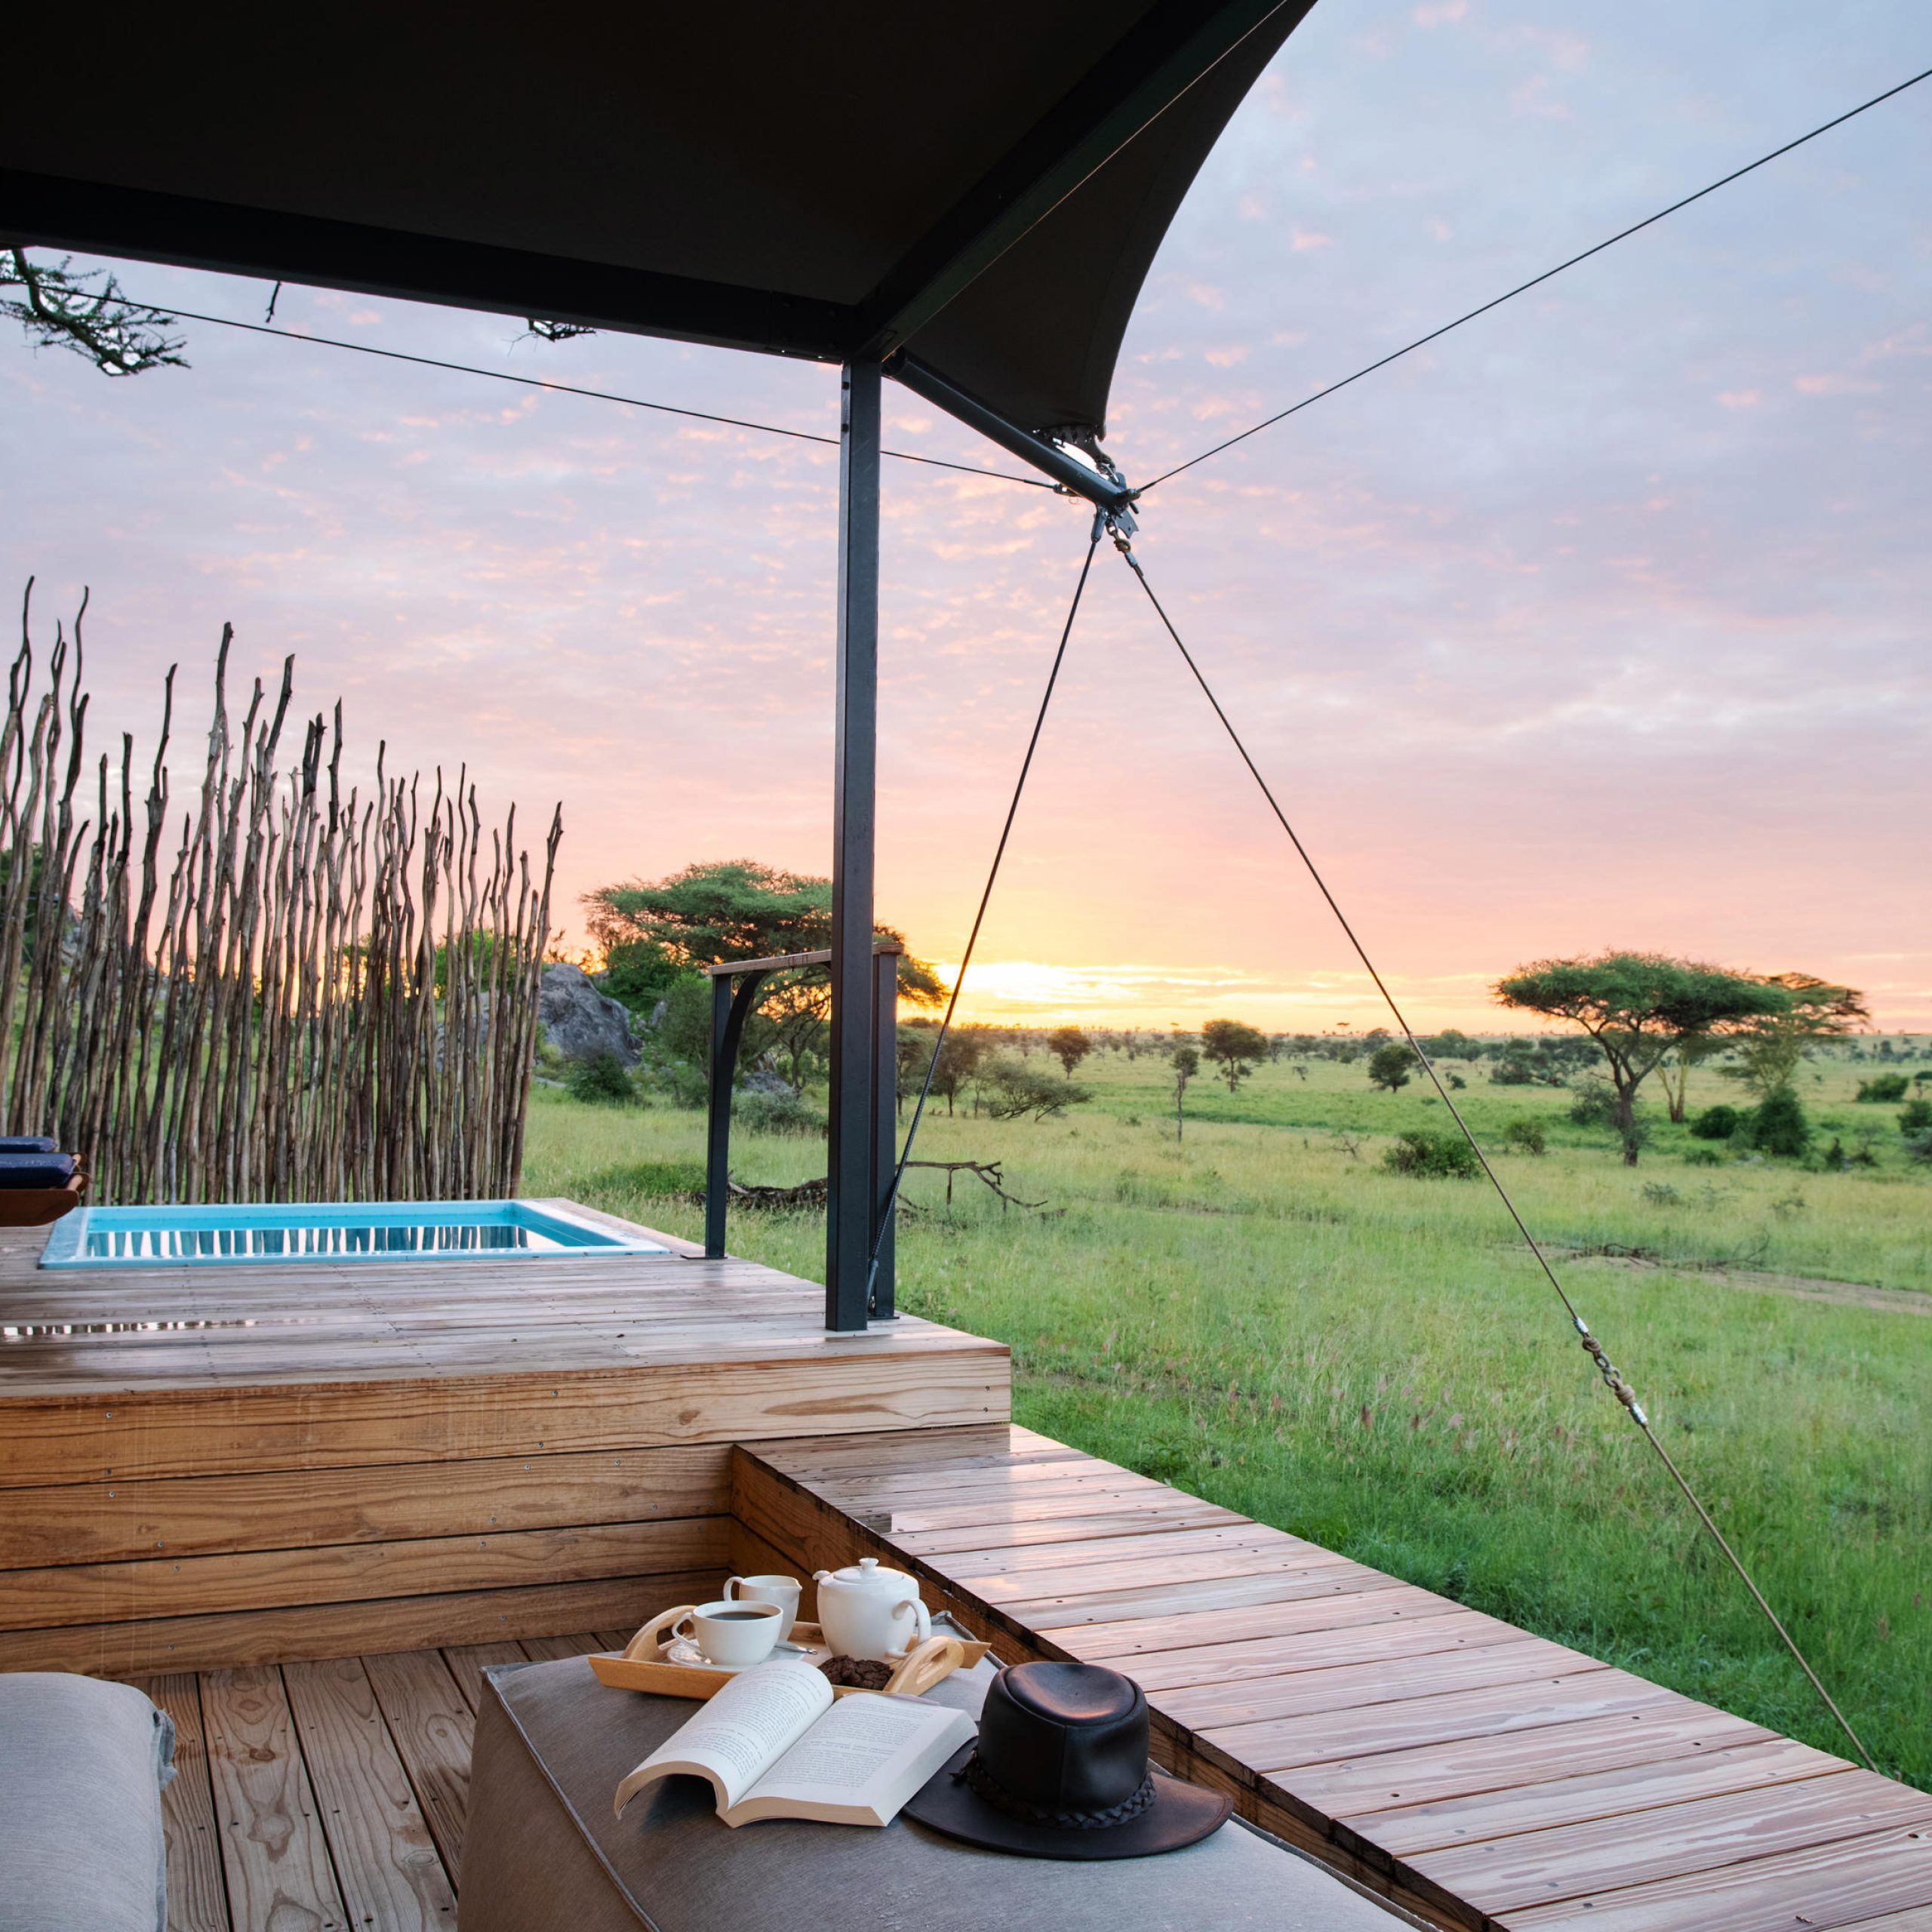 African vacation package